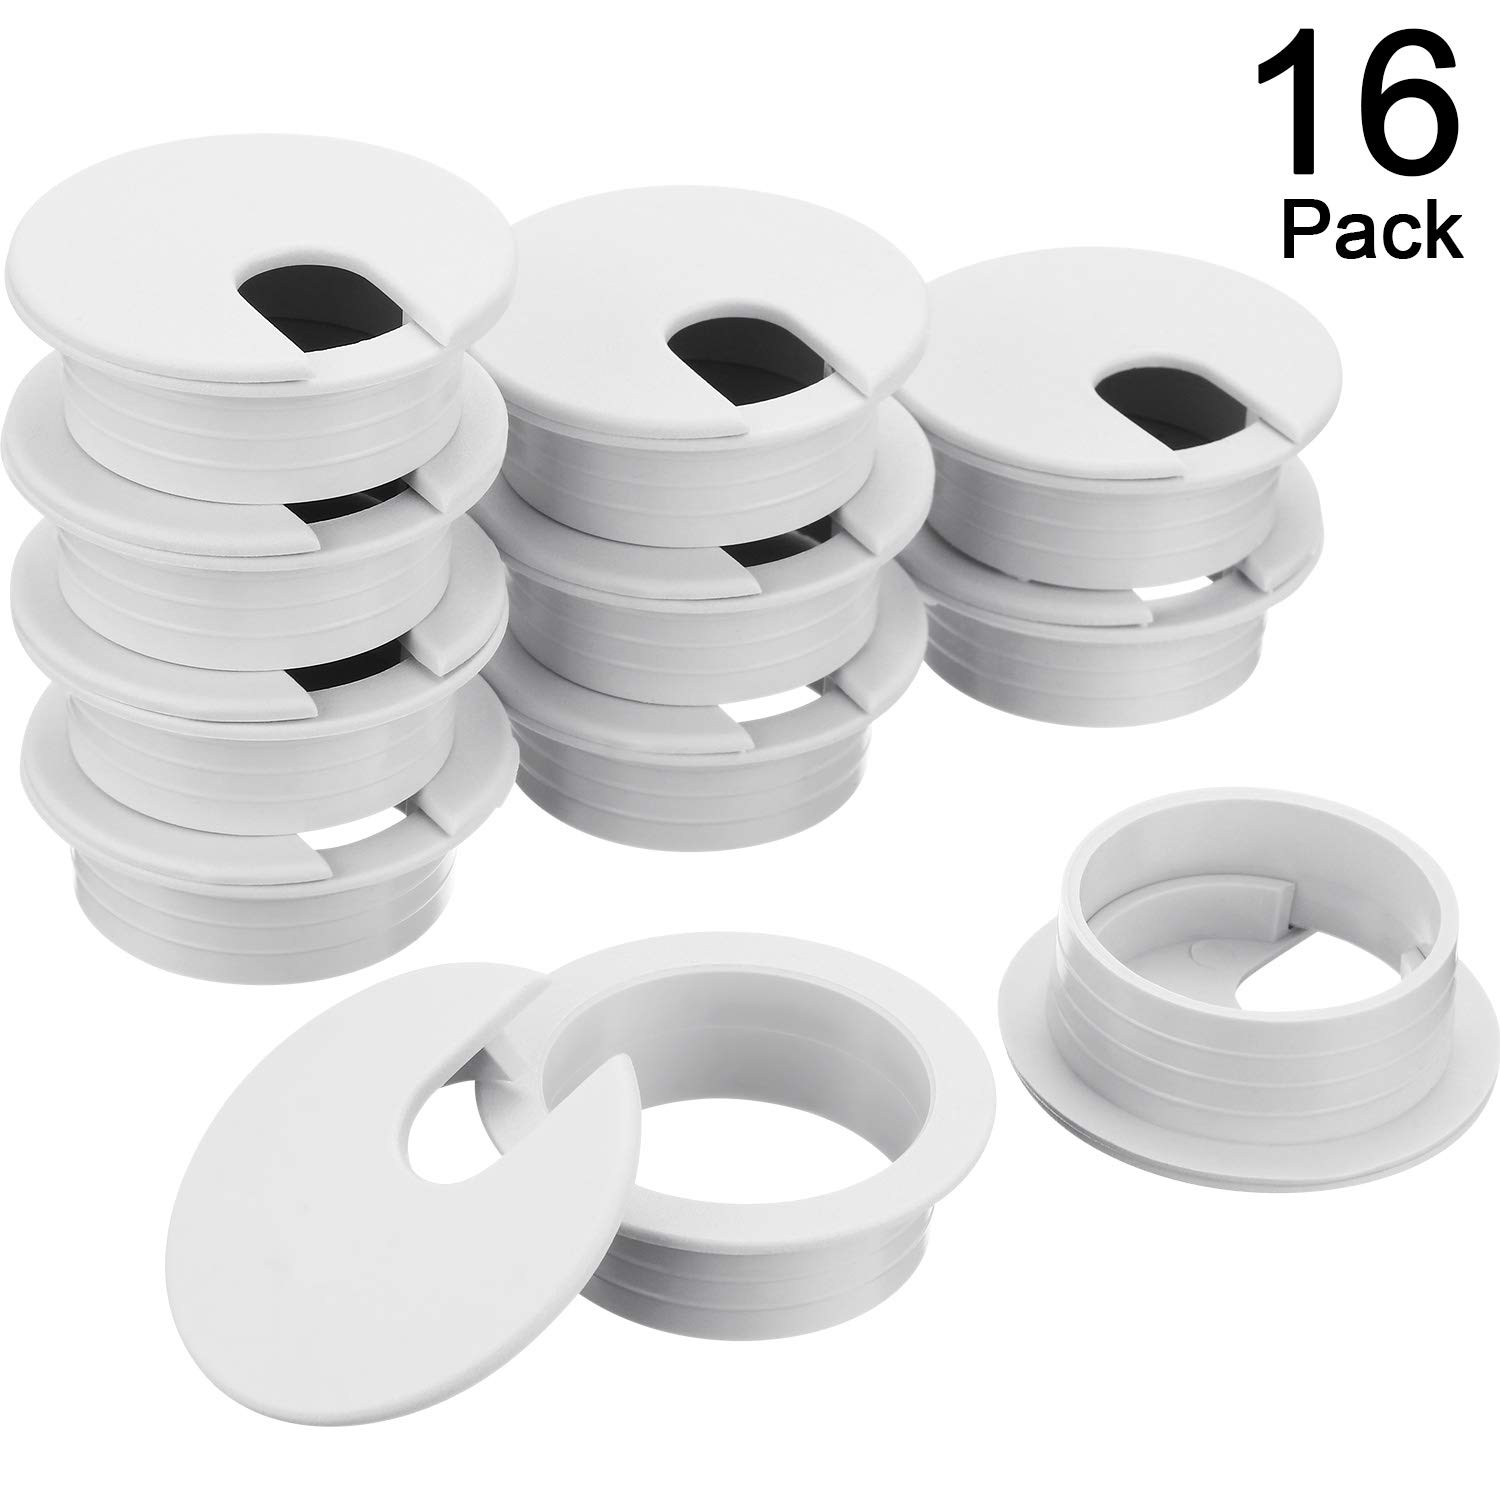 Desk Grommet, Plastic Desk Cord Cable Hole Cover Grommet for Computer Table Wire Organizer for Home and Office, 35 mm/ 1.38 Inch Mounting Hole Diameter (White, 16 Packs)